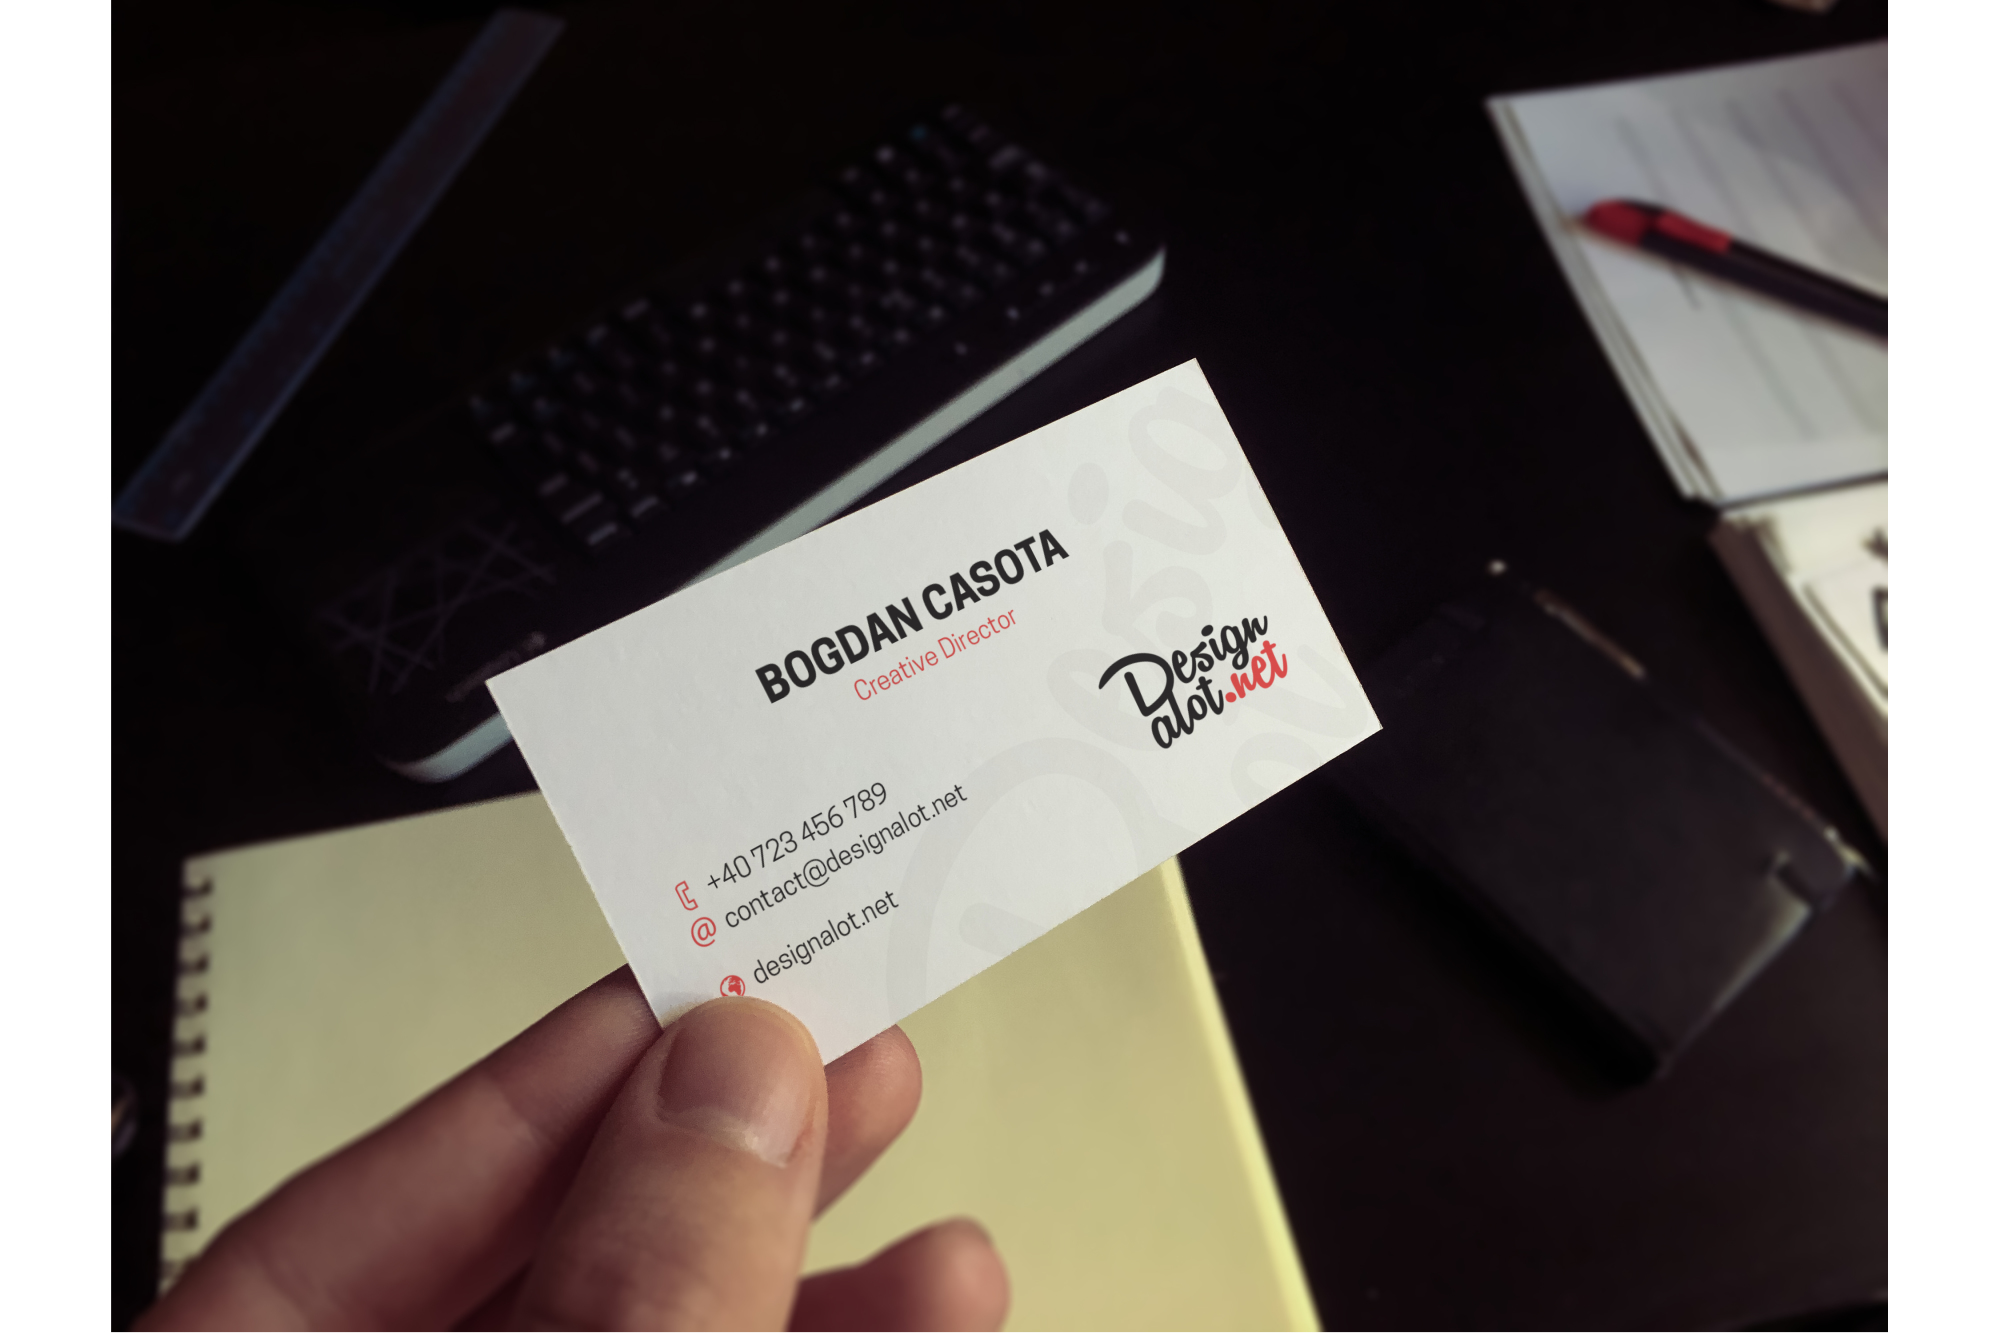 5 Realistic Business Cards Mockups - 50% OFF example image 2